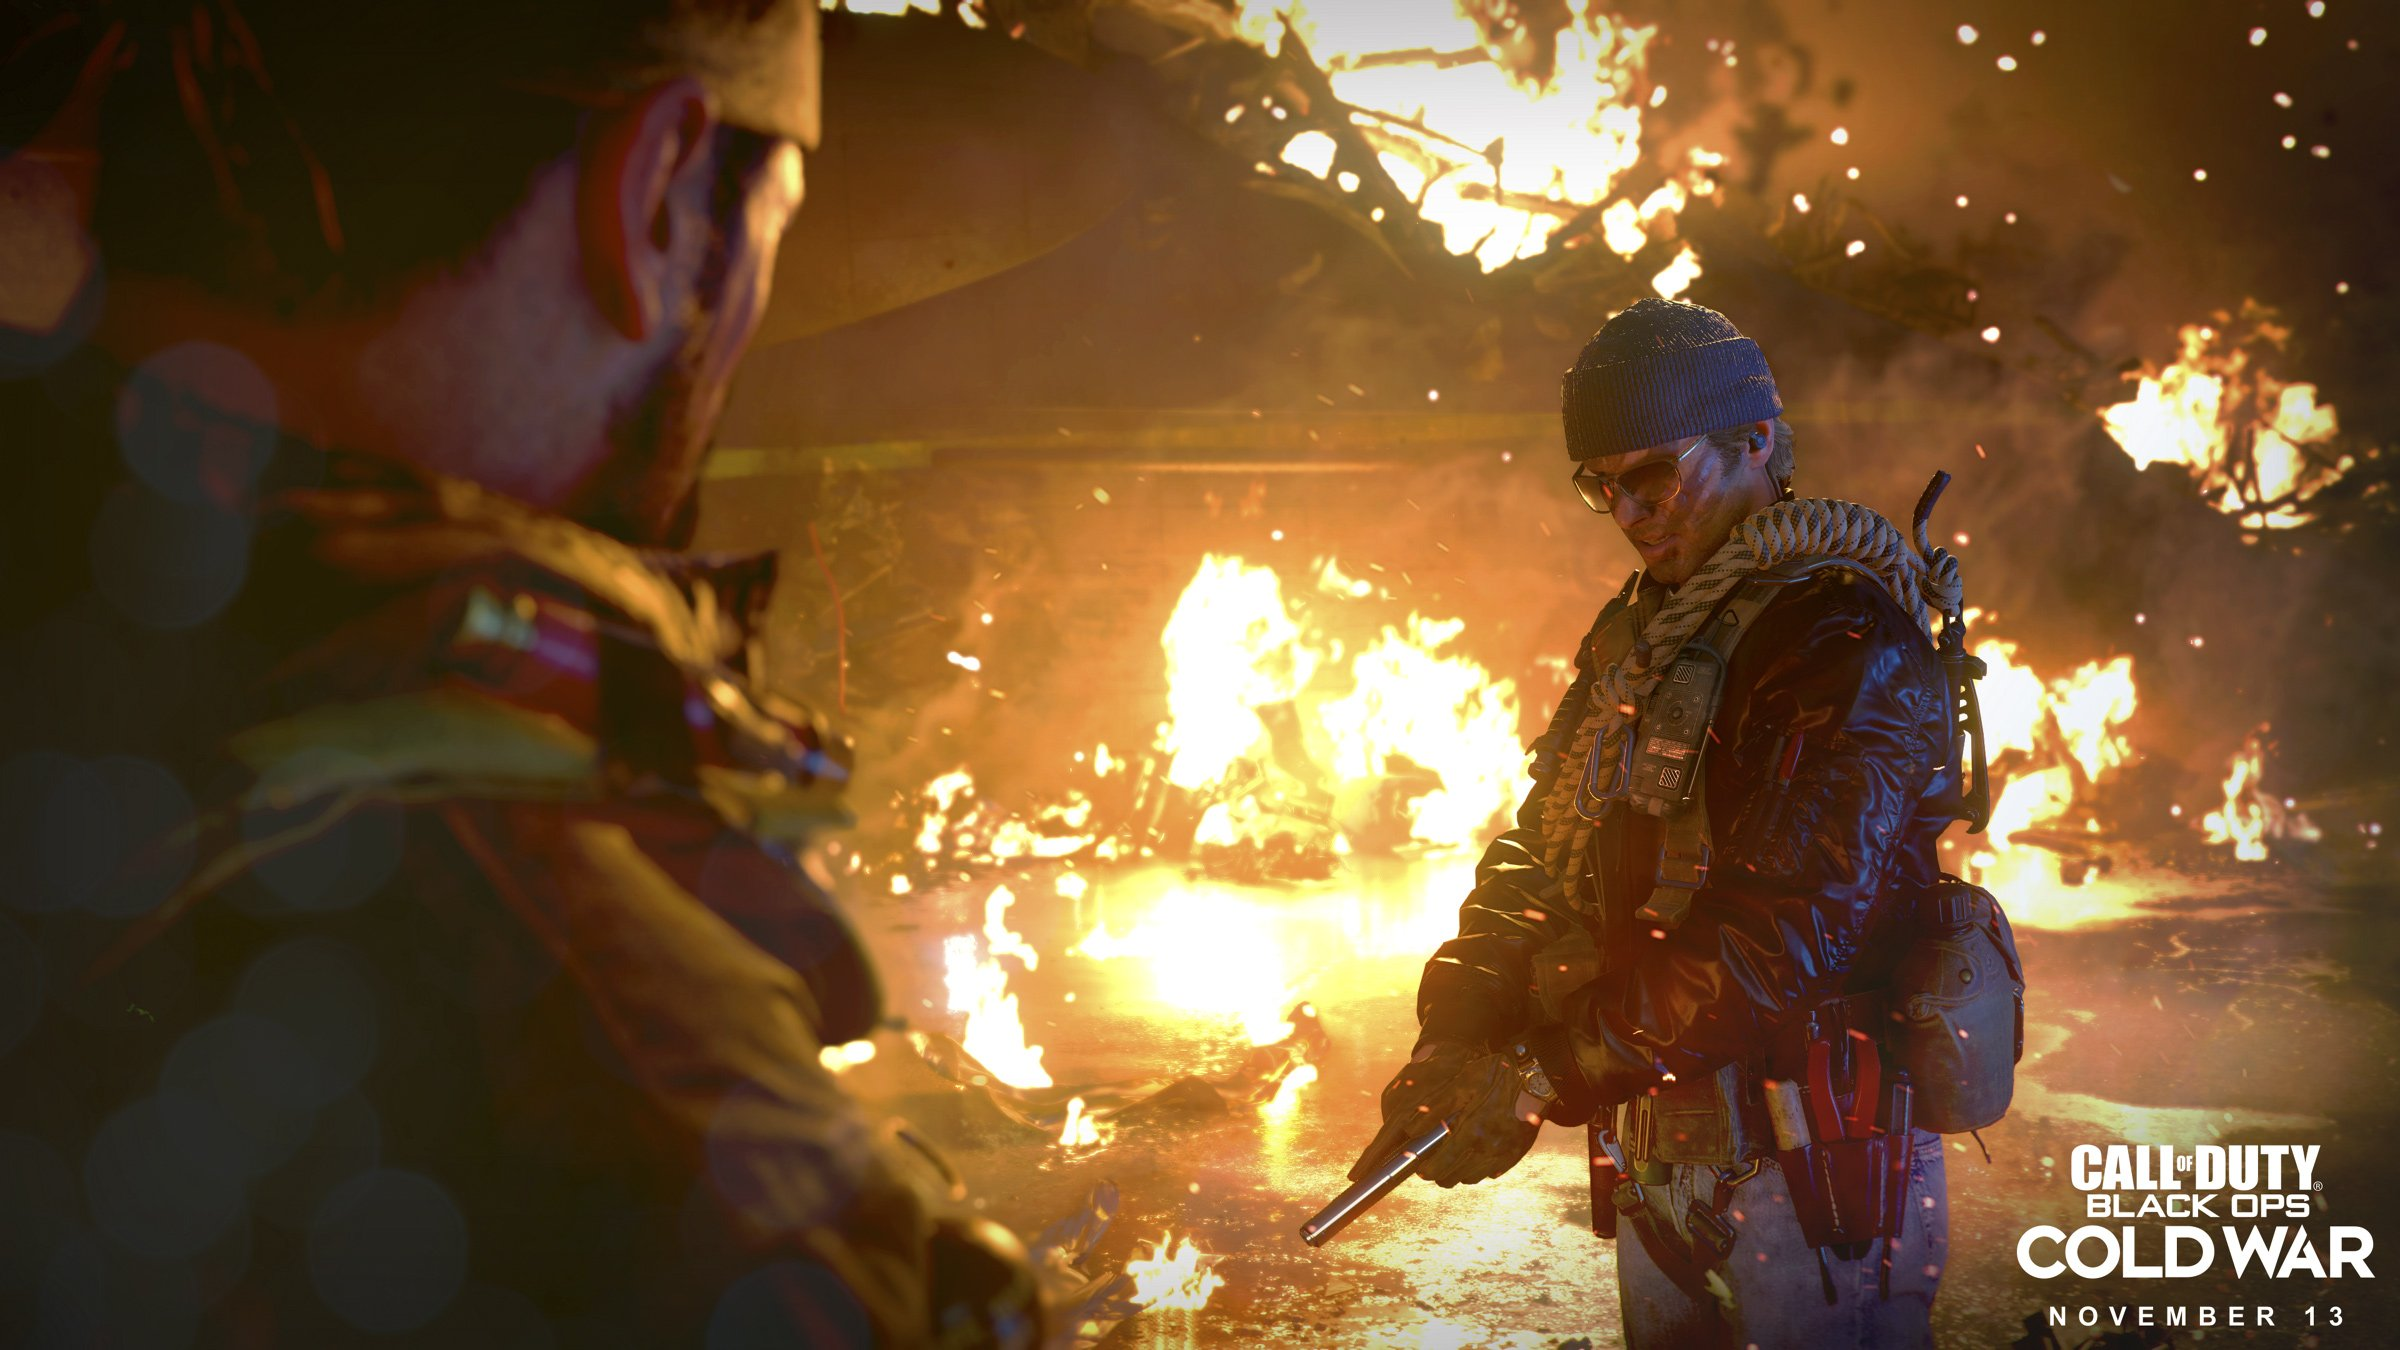 Call of Duty: Black Ops Cold War is a storage hog, but you can install multiplayer only on PC screenshot